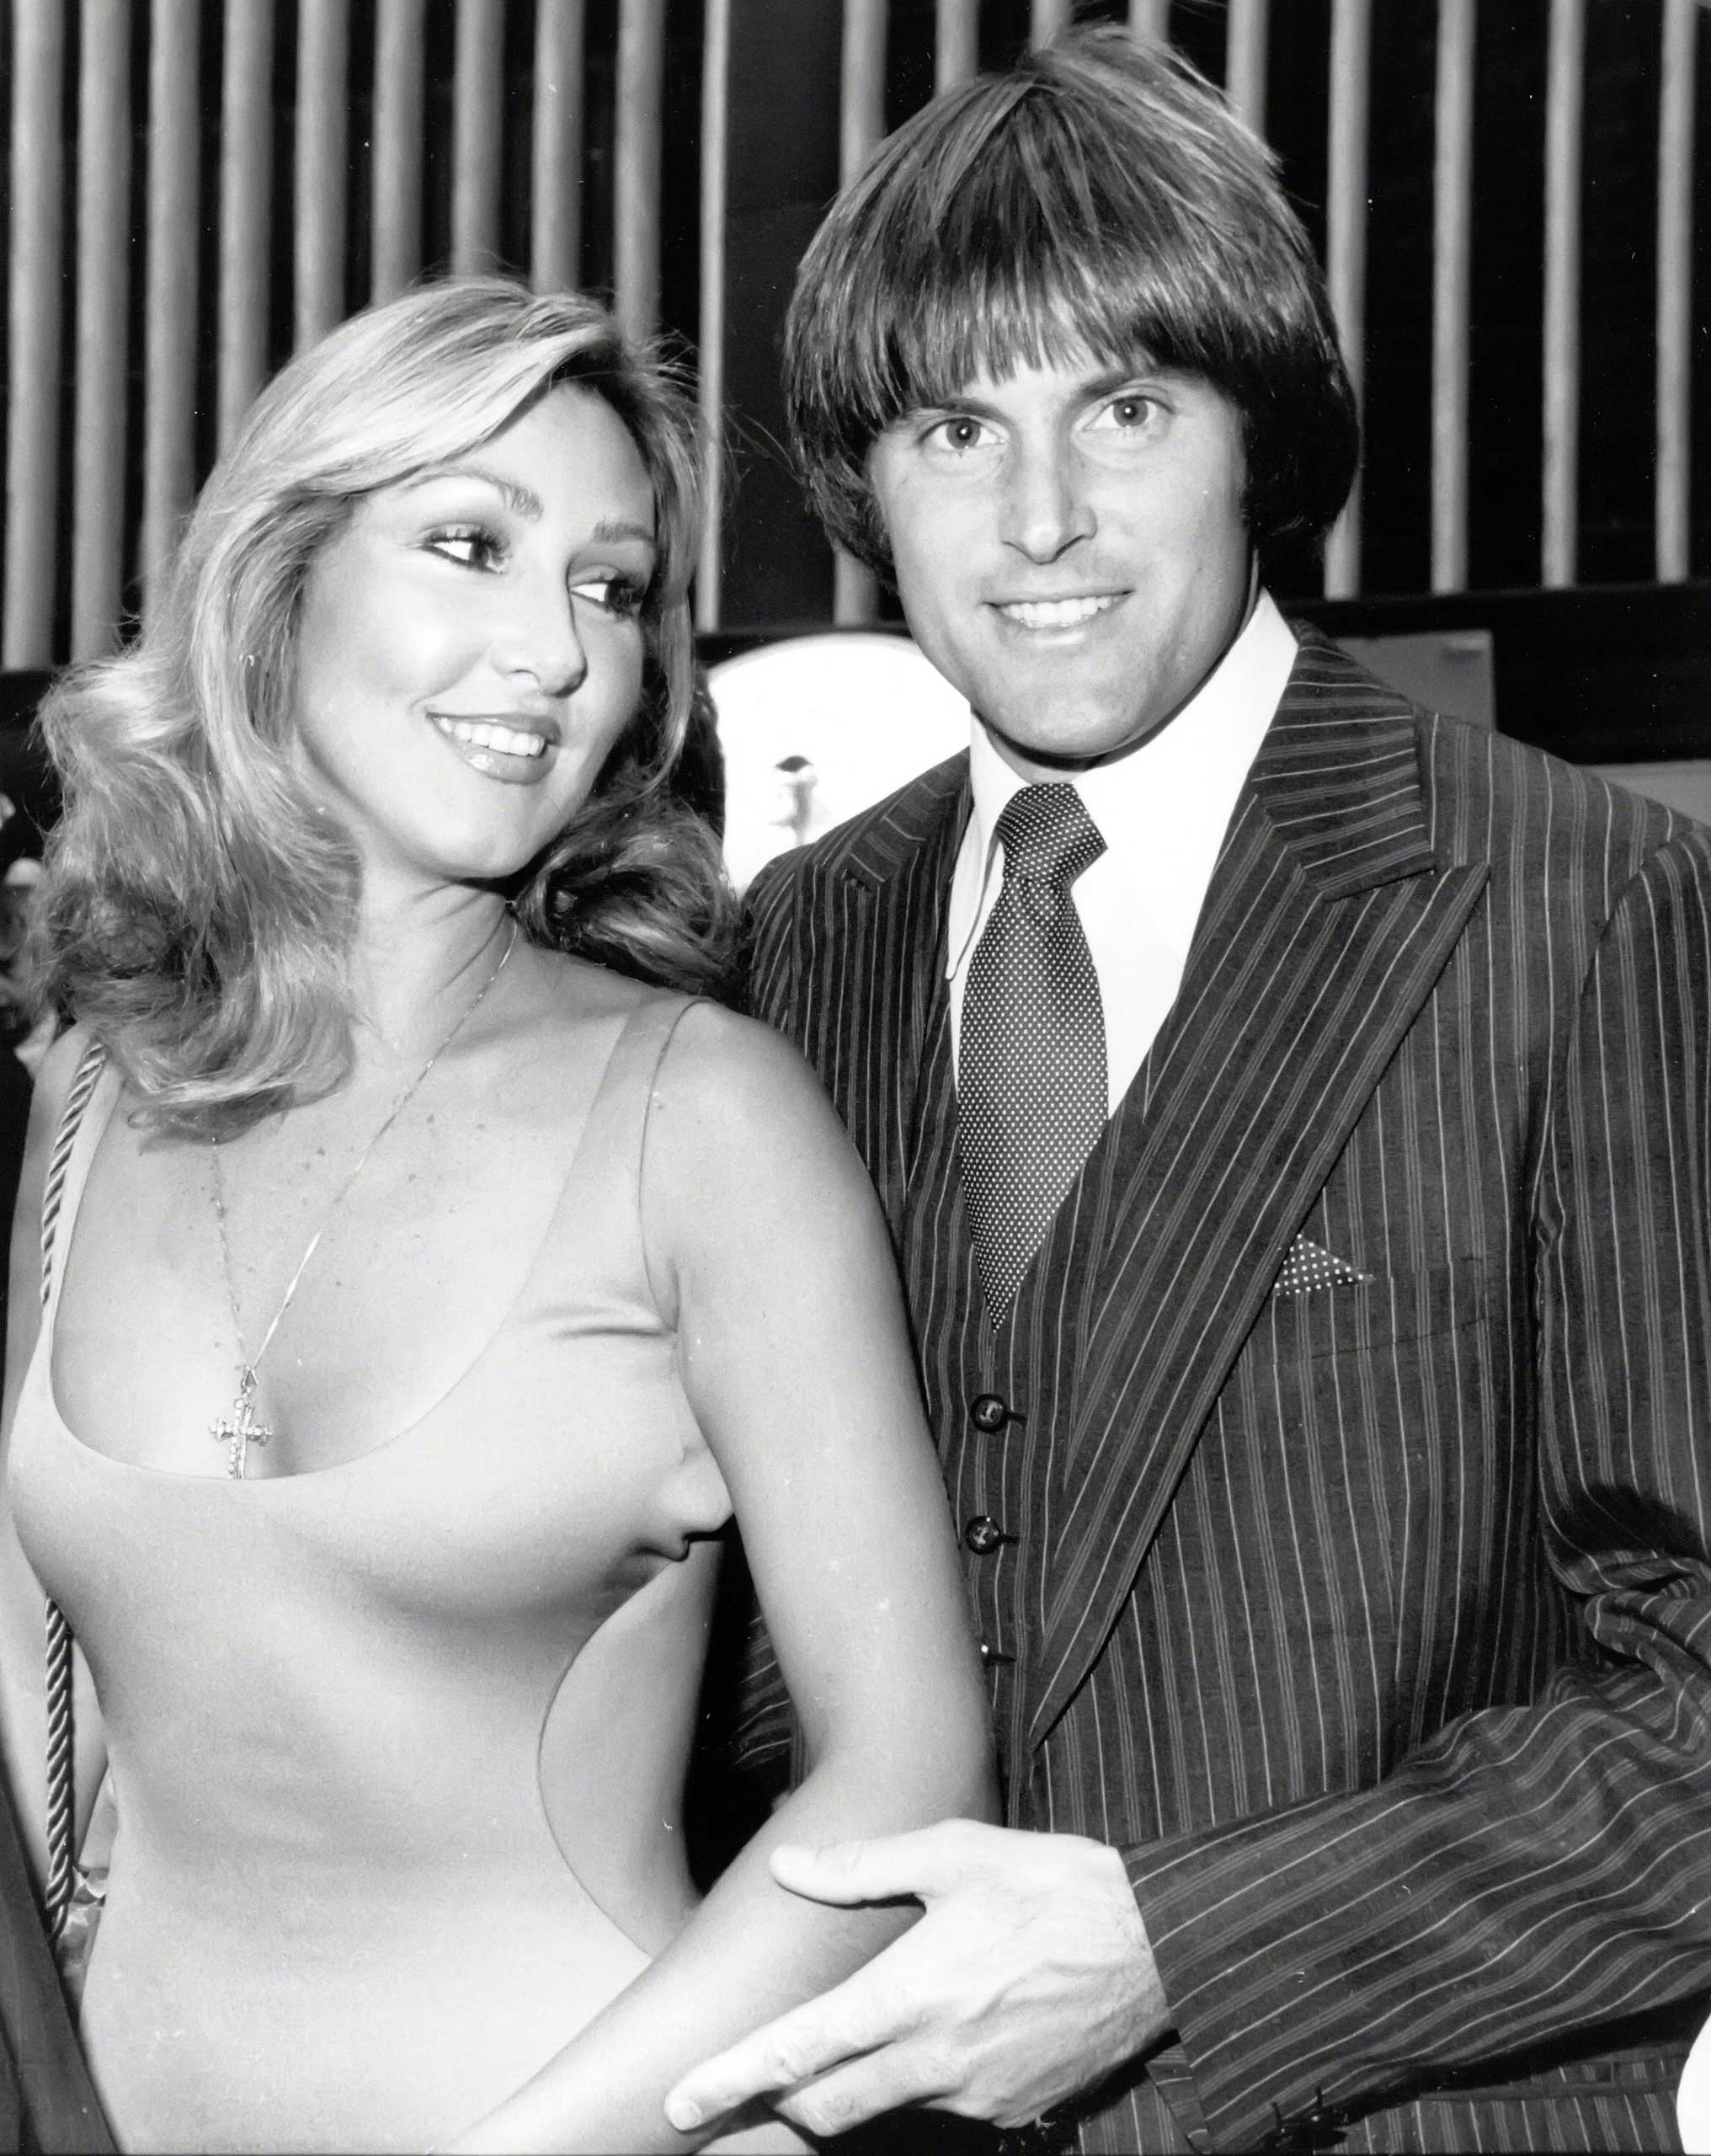 Jenner married actress Linda Thompson, above, on Jan. 5, 1981, following his divorce with Chrystie Crownover.